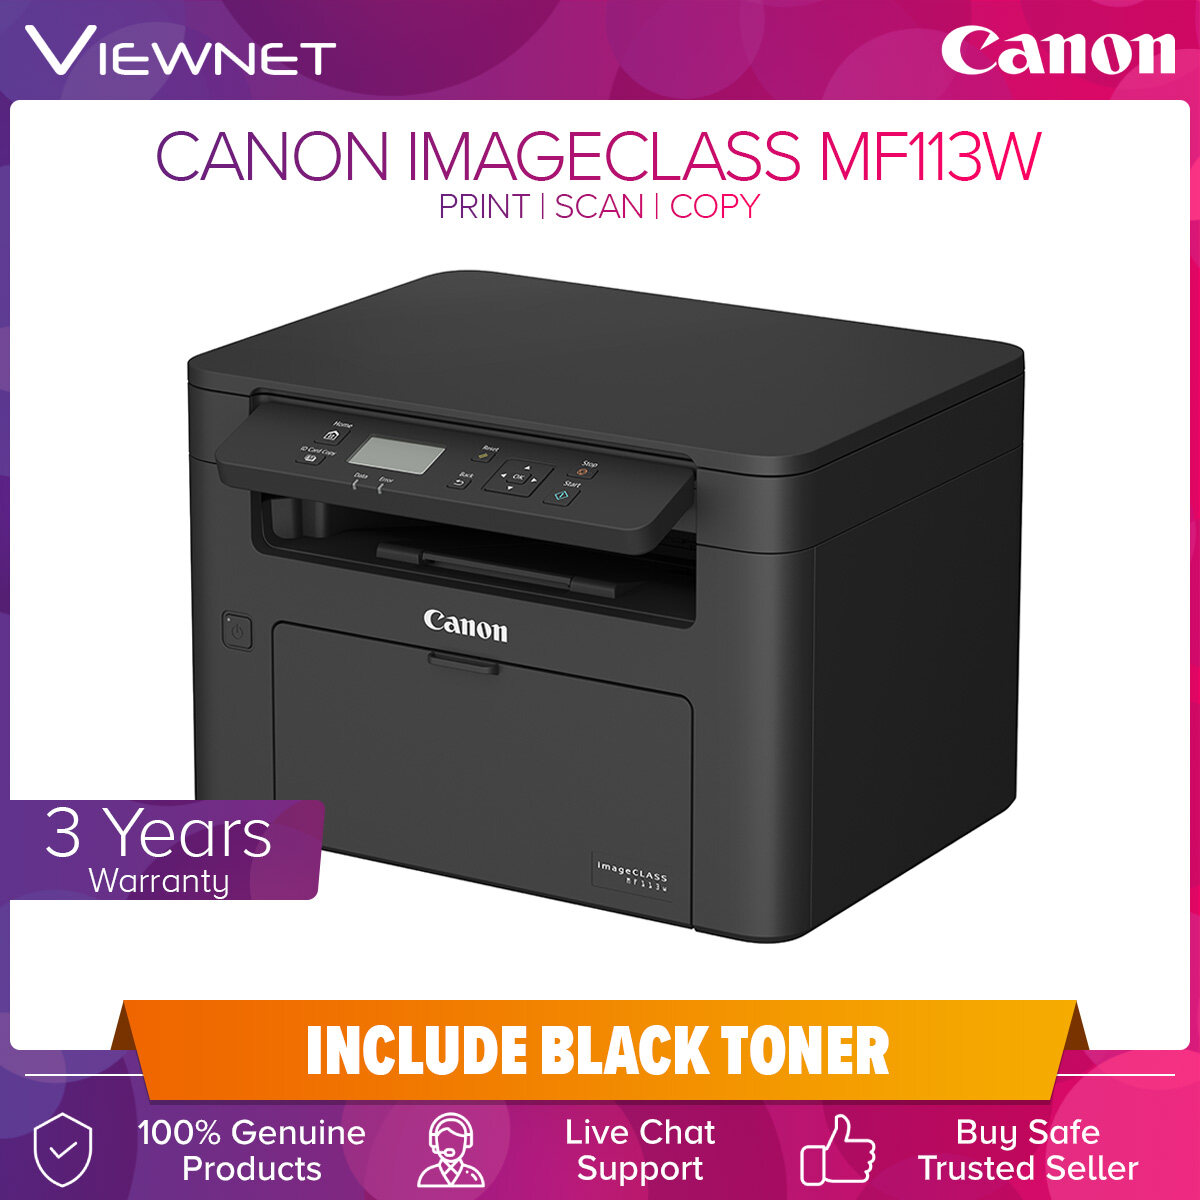 Canon imageCLASS MF113w Compact All-in-One with wireless connectivity Print, Scan, Copy